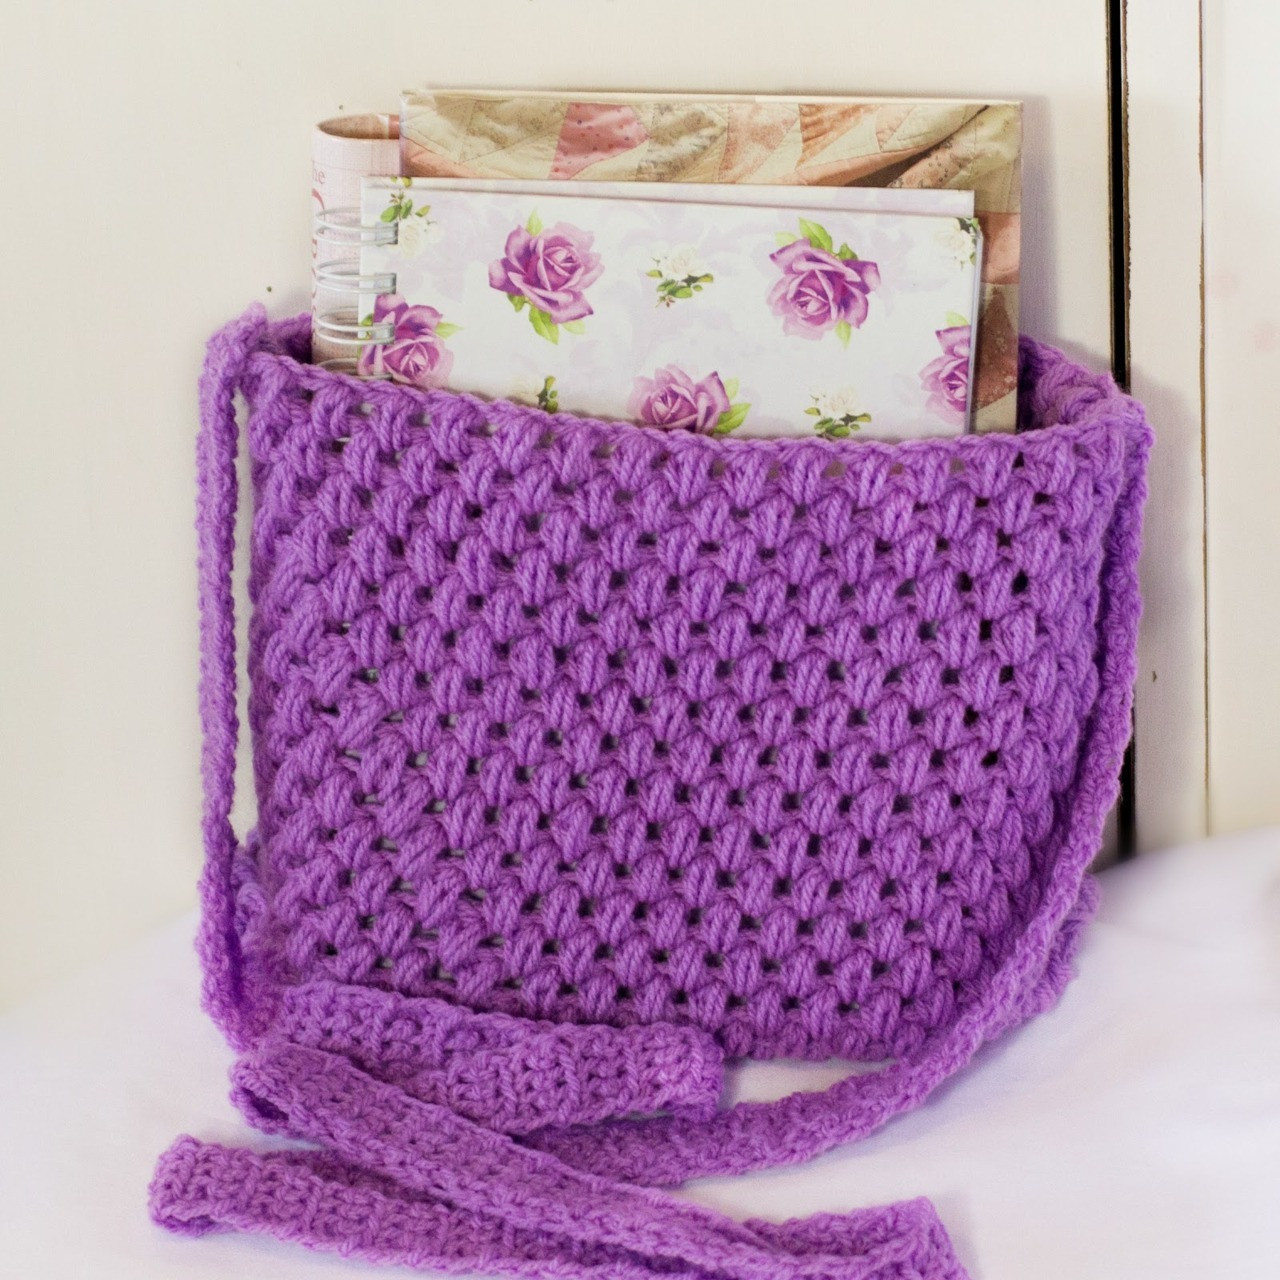 Free Easy Crochet Patterns New tote Bag Pattern Easy Crochet Messenger Bag Pattern Of Superb 49 Images Free Easy Crochet Patterns